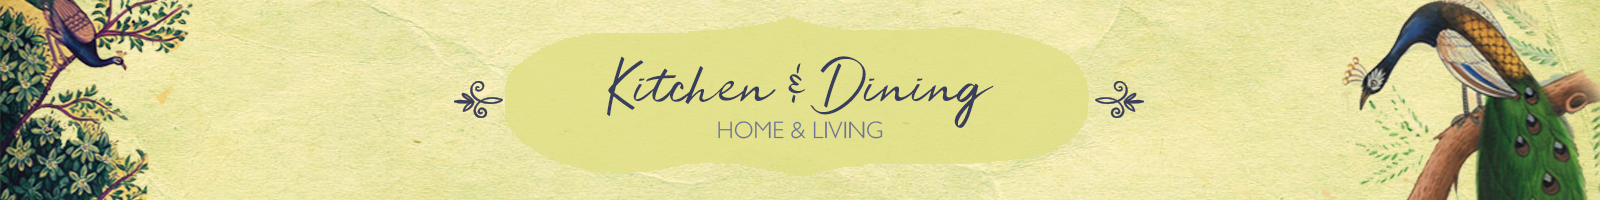 Authentic Handcrafted Kitchen & Dining Items by The India Craft House